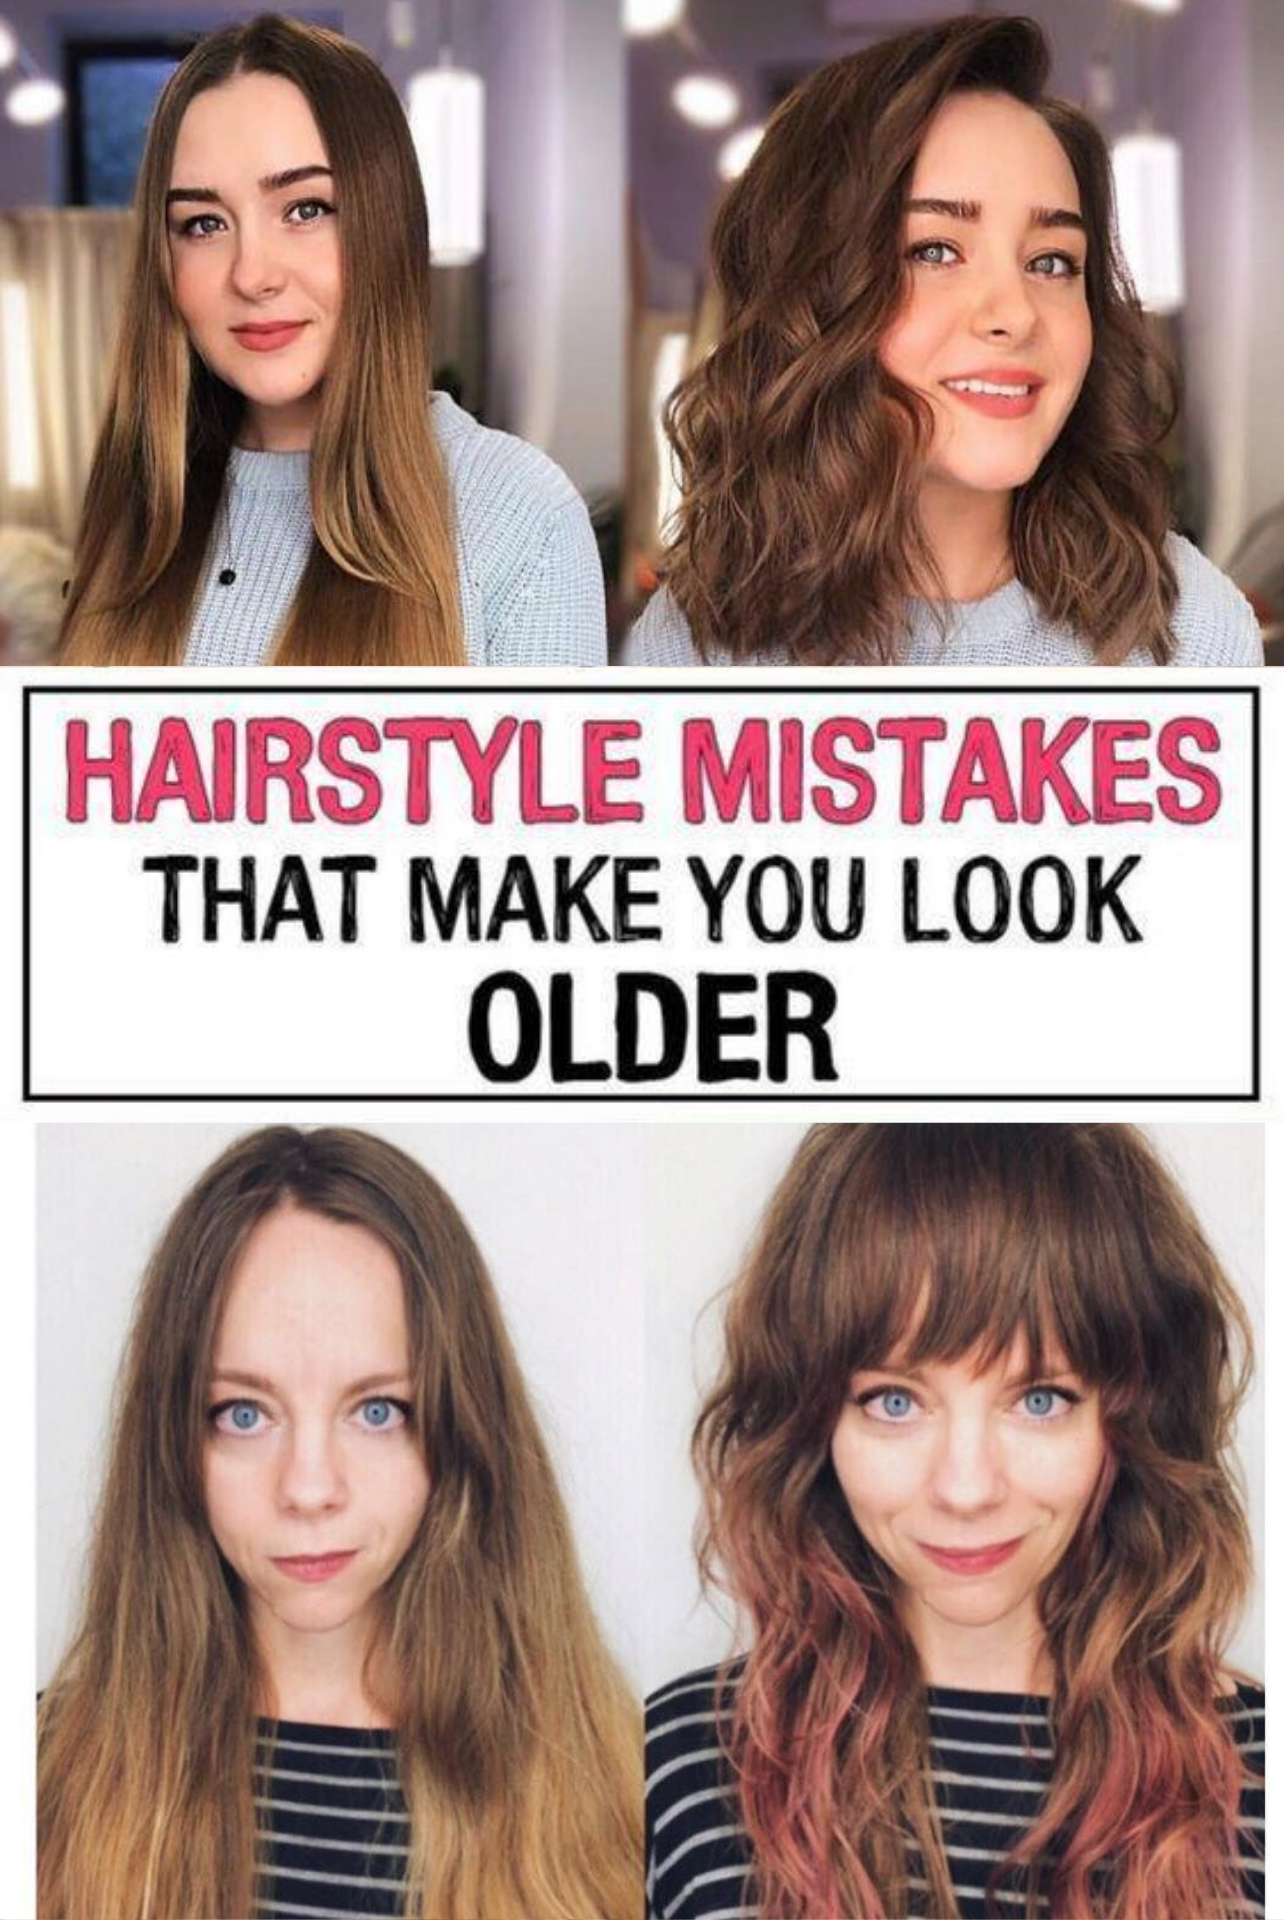 11 Hairstyle Mistakes That Are Aging You In 2020 Hairstyle Mom Hairstyles Beauty Mistakes